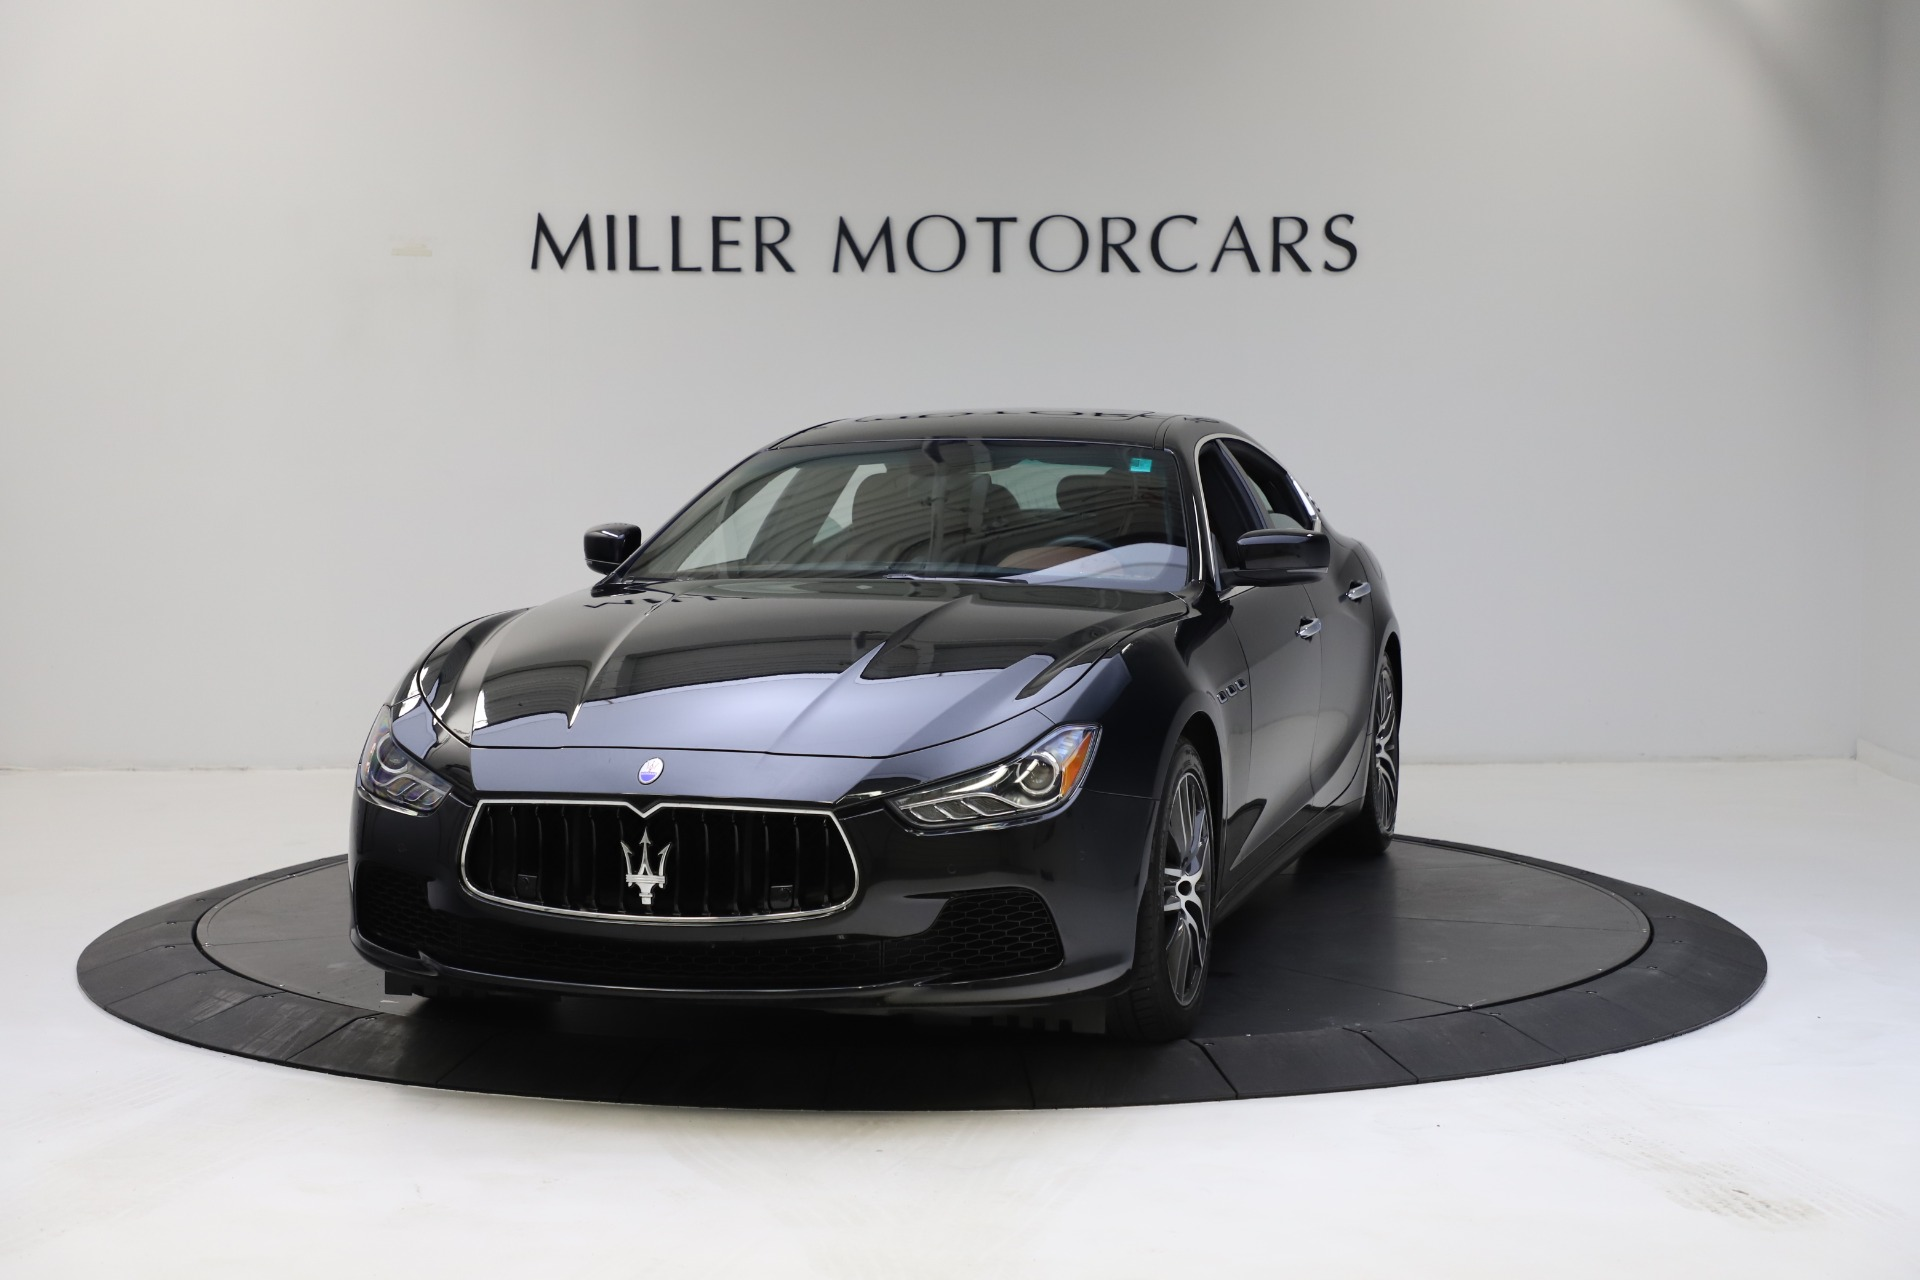 Used 2014 Maserati Ghibli S Q4 for sale $29,900 at Maserati of Westport in Westport CT 06880 1